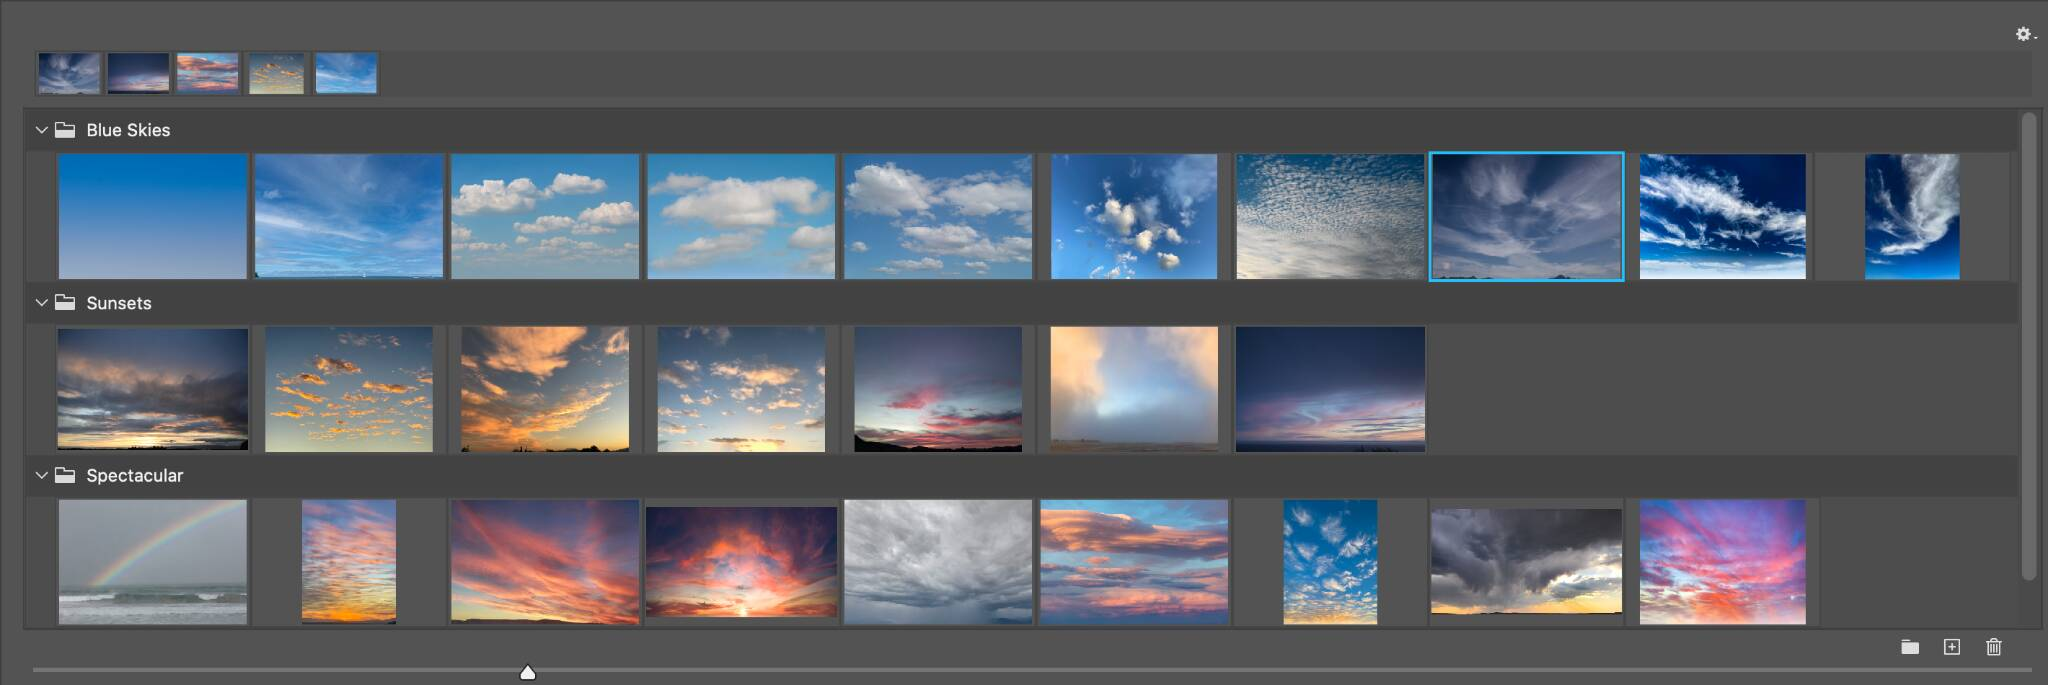 Adobe Photoshop Sky